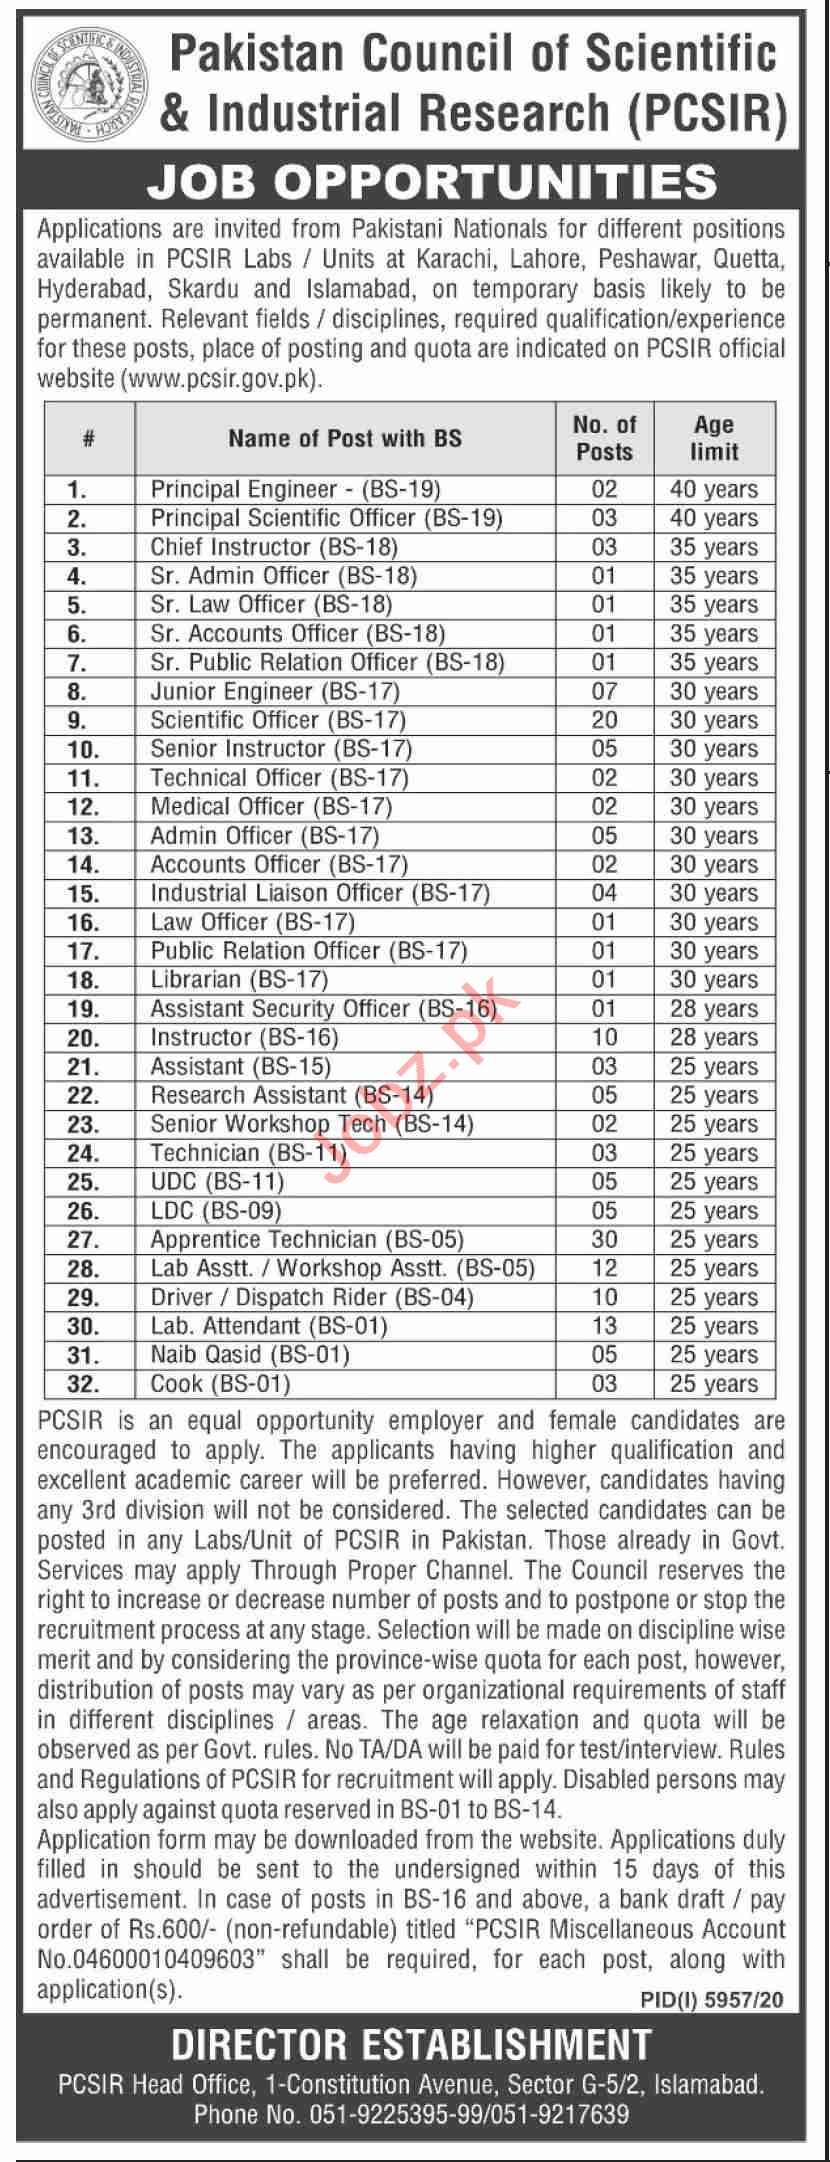 Pakistan Council of Scientific & Industrial Research Jobs